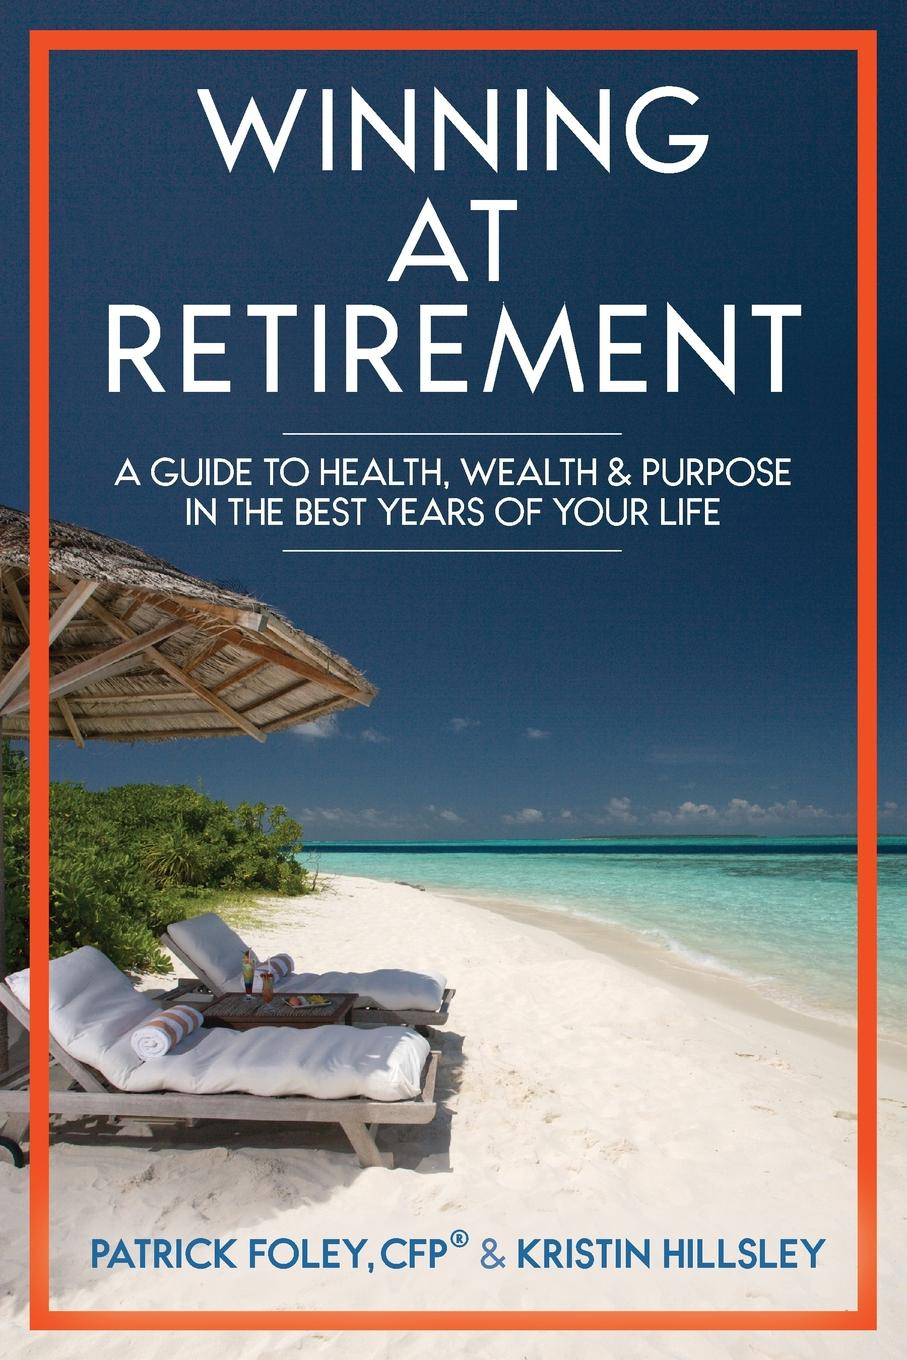 Patrick Foley, Kristin Hillsley Winning at Retirement. A Guide to Health, Wealth . Purpose in the Best Years of Your Life kaycee krysty wealth regeneration at retirement planning for a lifetime of leadership